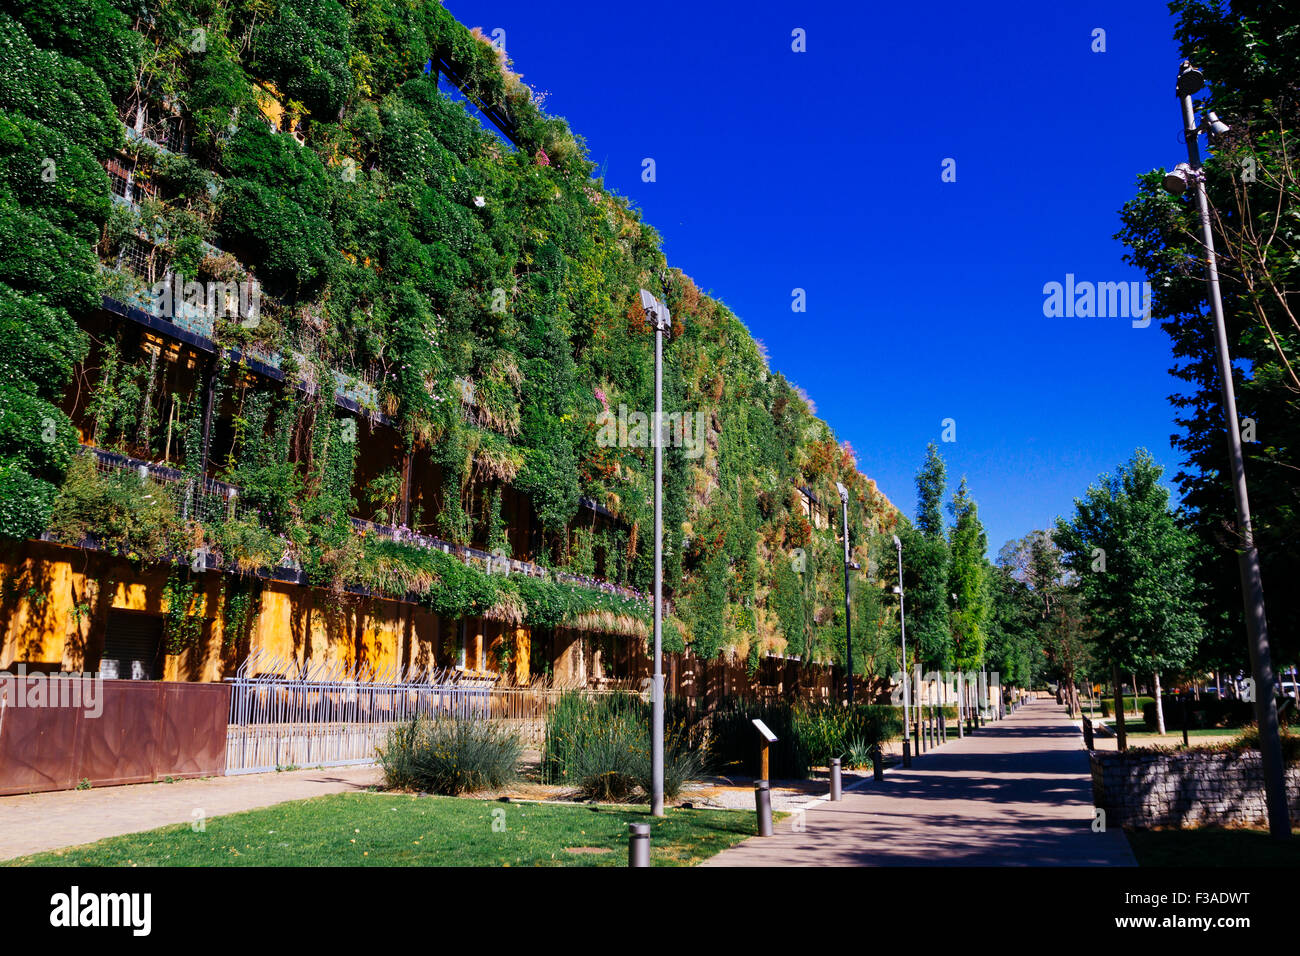 Sustainable building, with a green facade - Stock Image